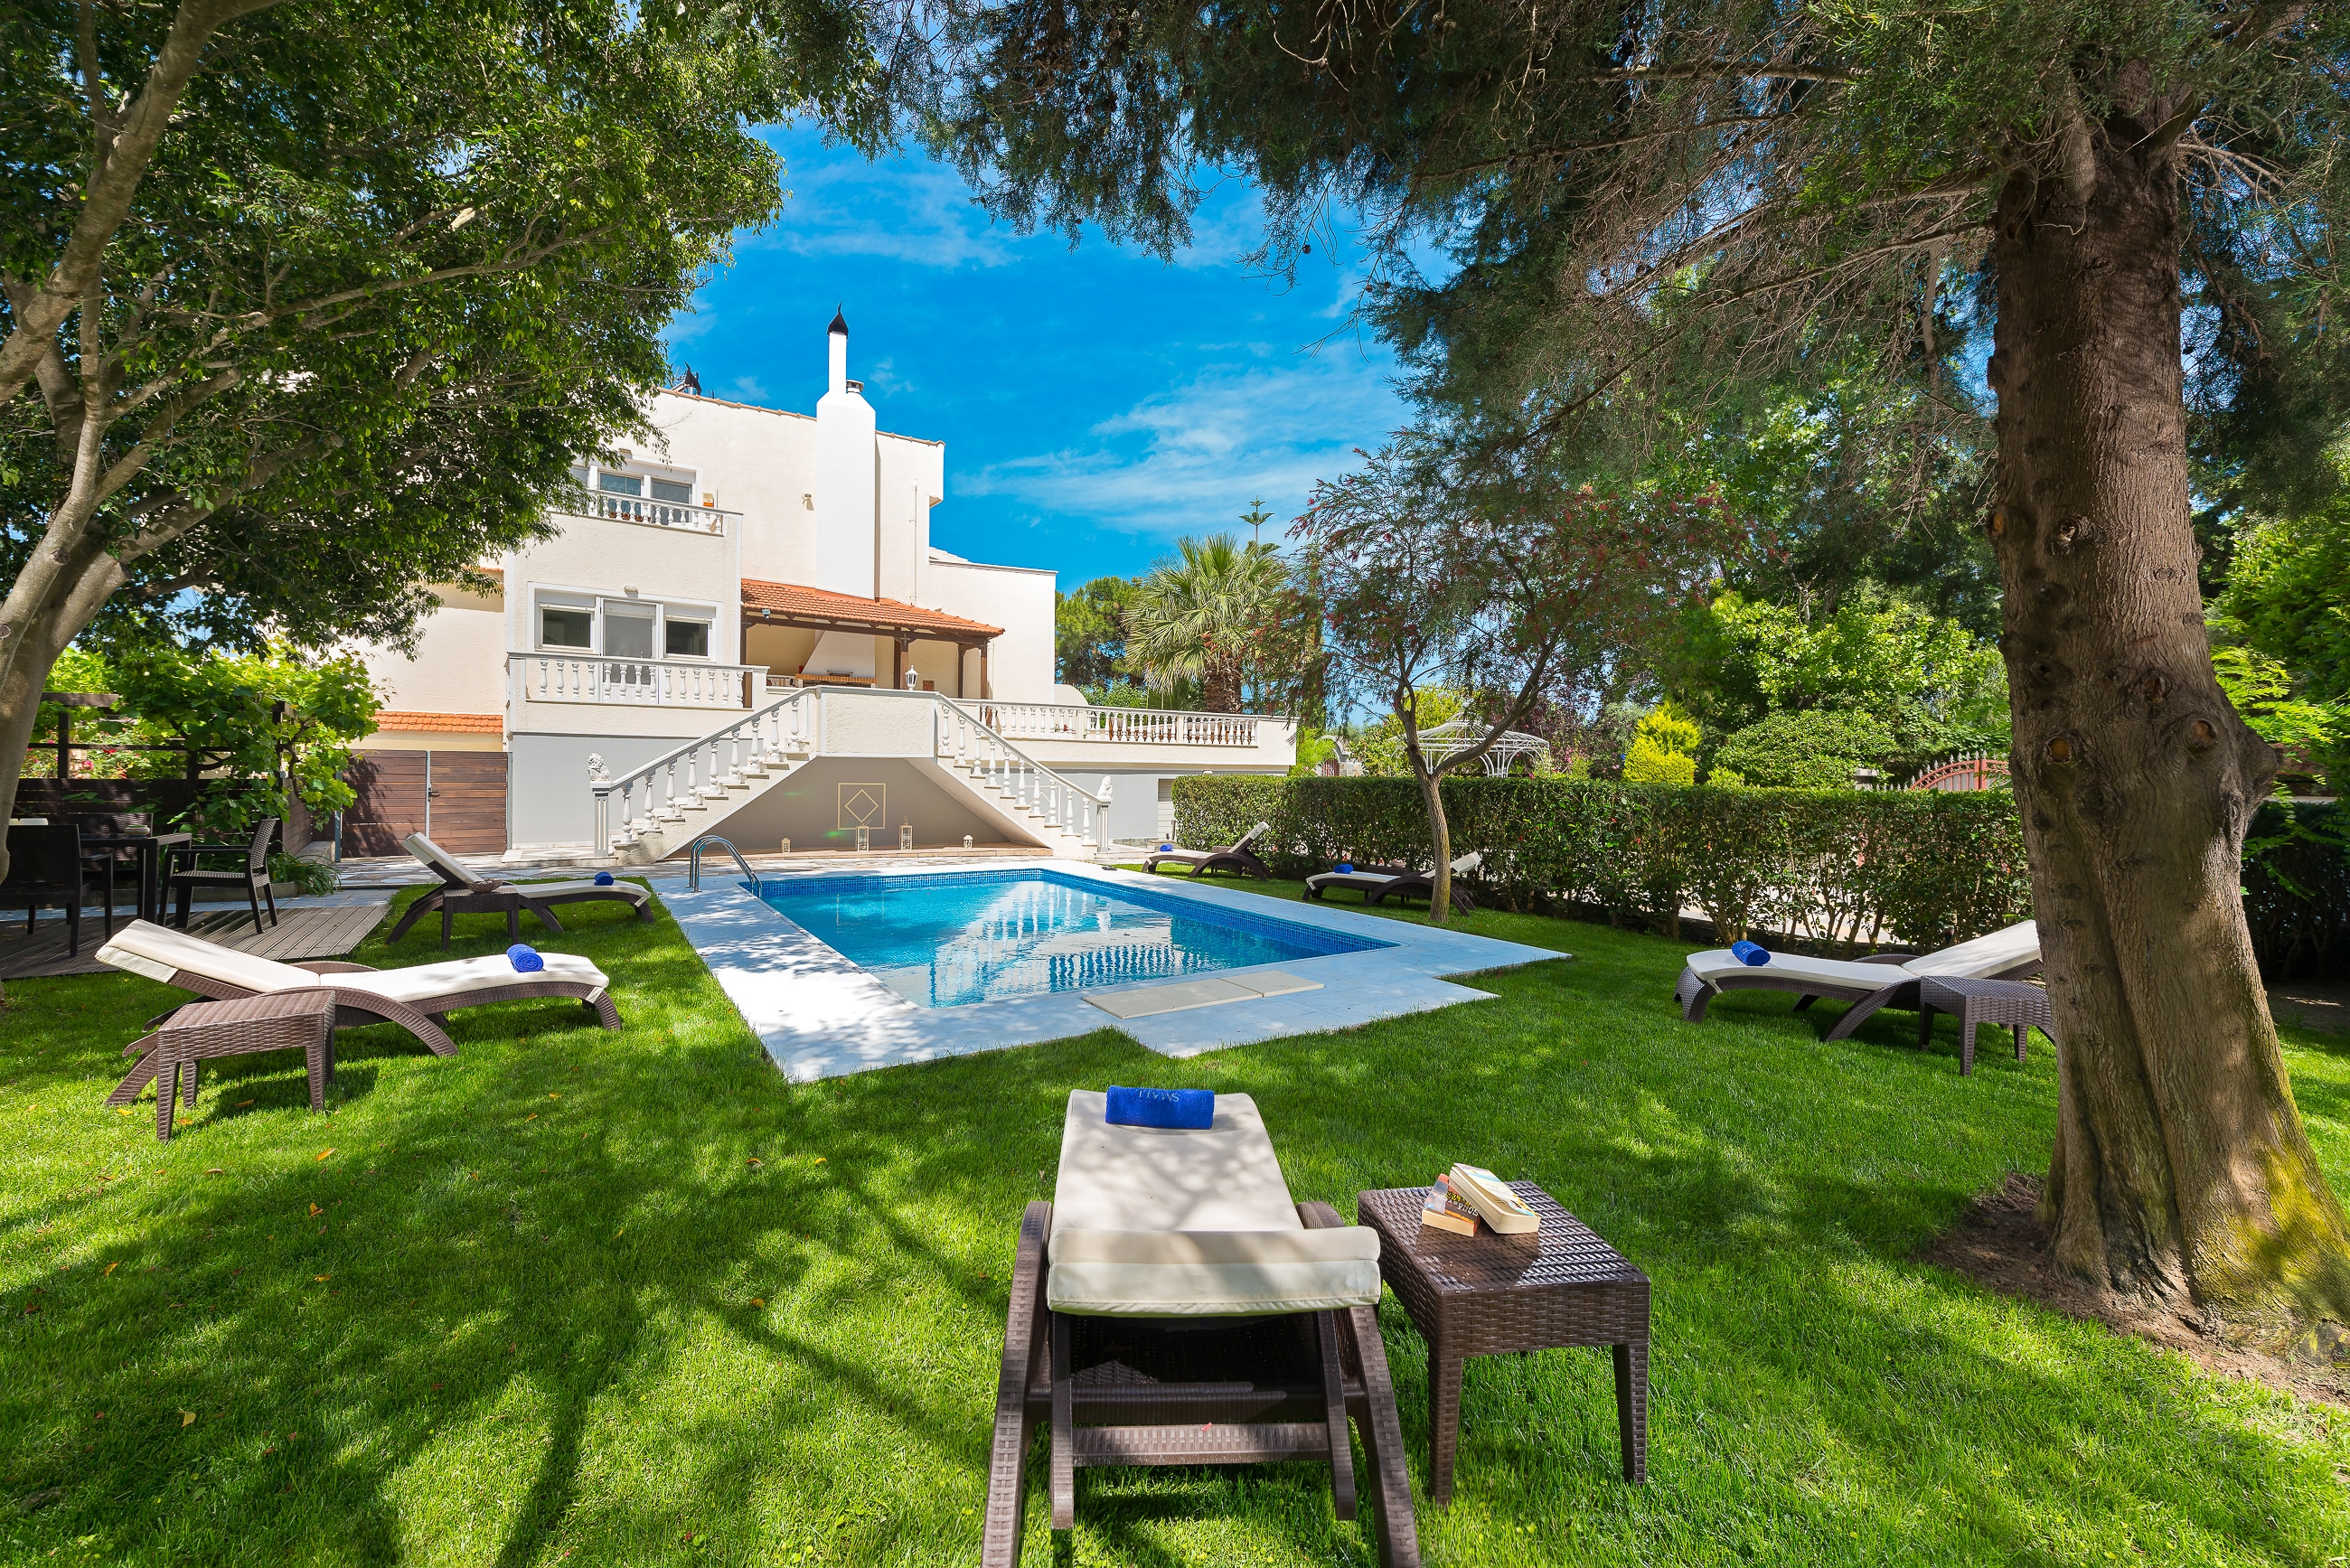 Property Image 2 - Luxurious villa with neoclassical and modern style